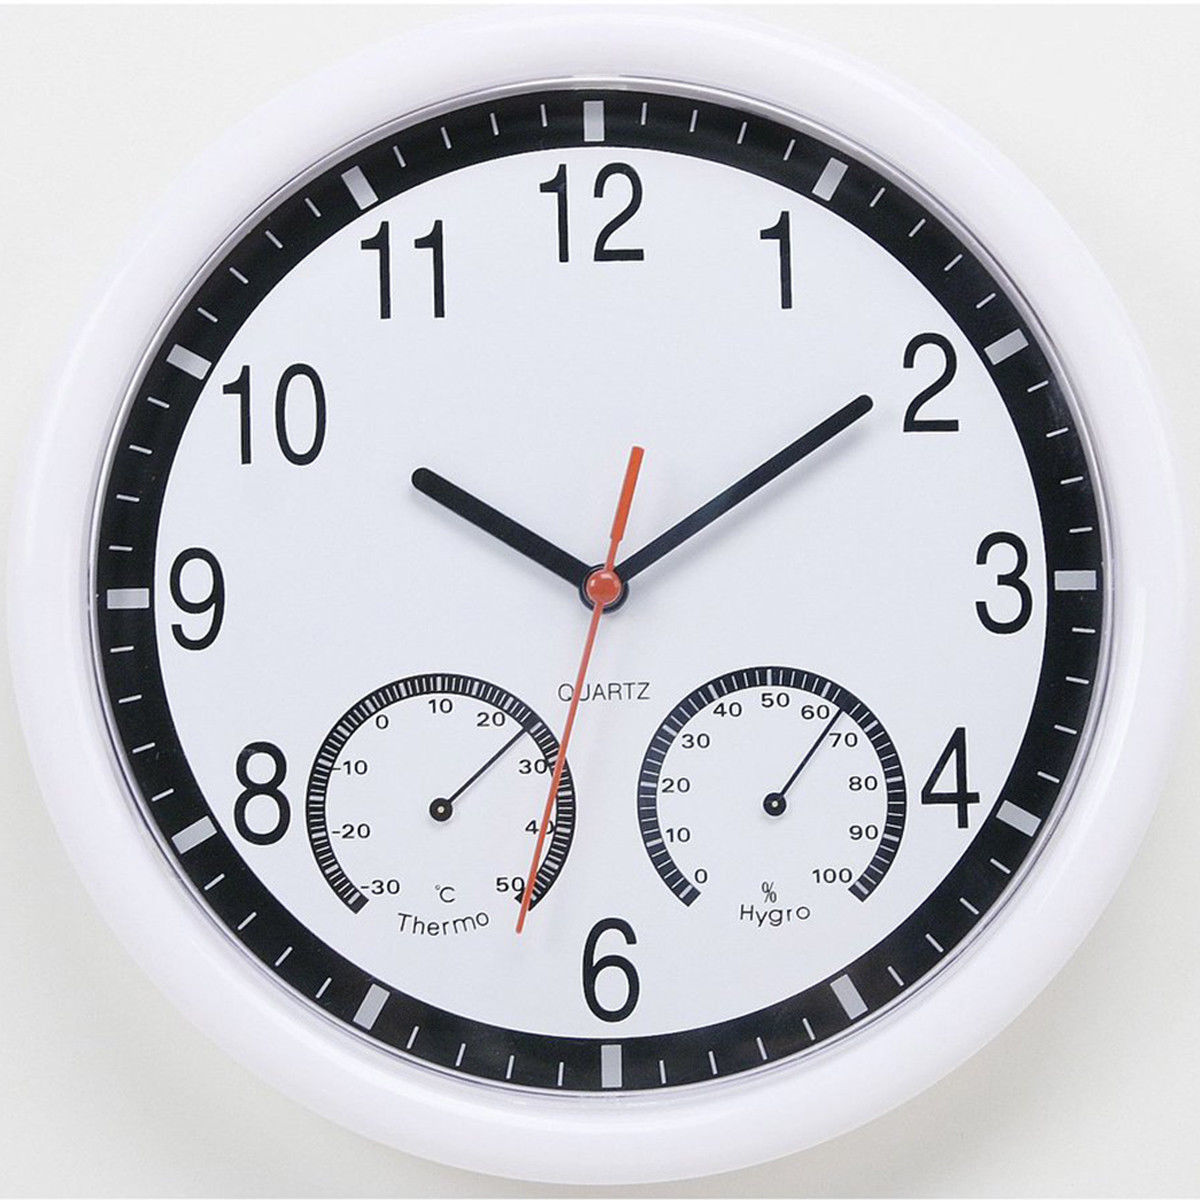 Ticking Silent Indoor/ Outdoor Garden Wall Clock Modern Design With Thermometer Living Home Office Clock Watch Digital Number